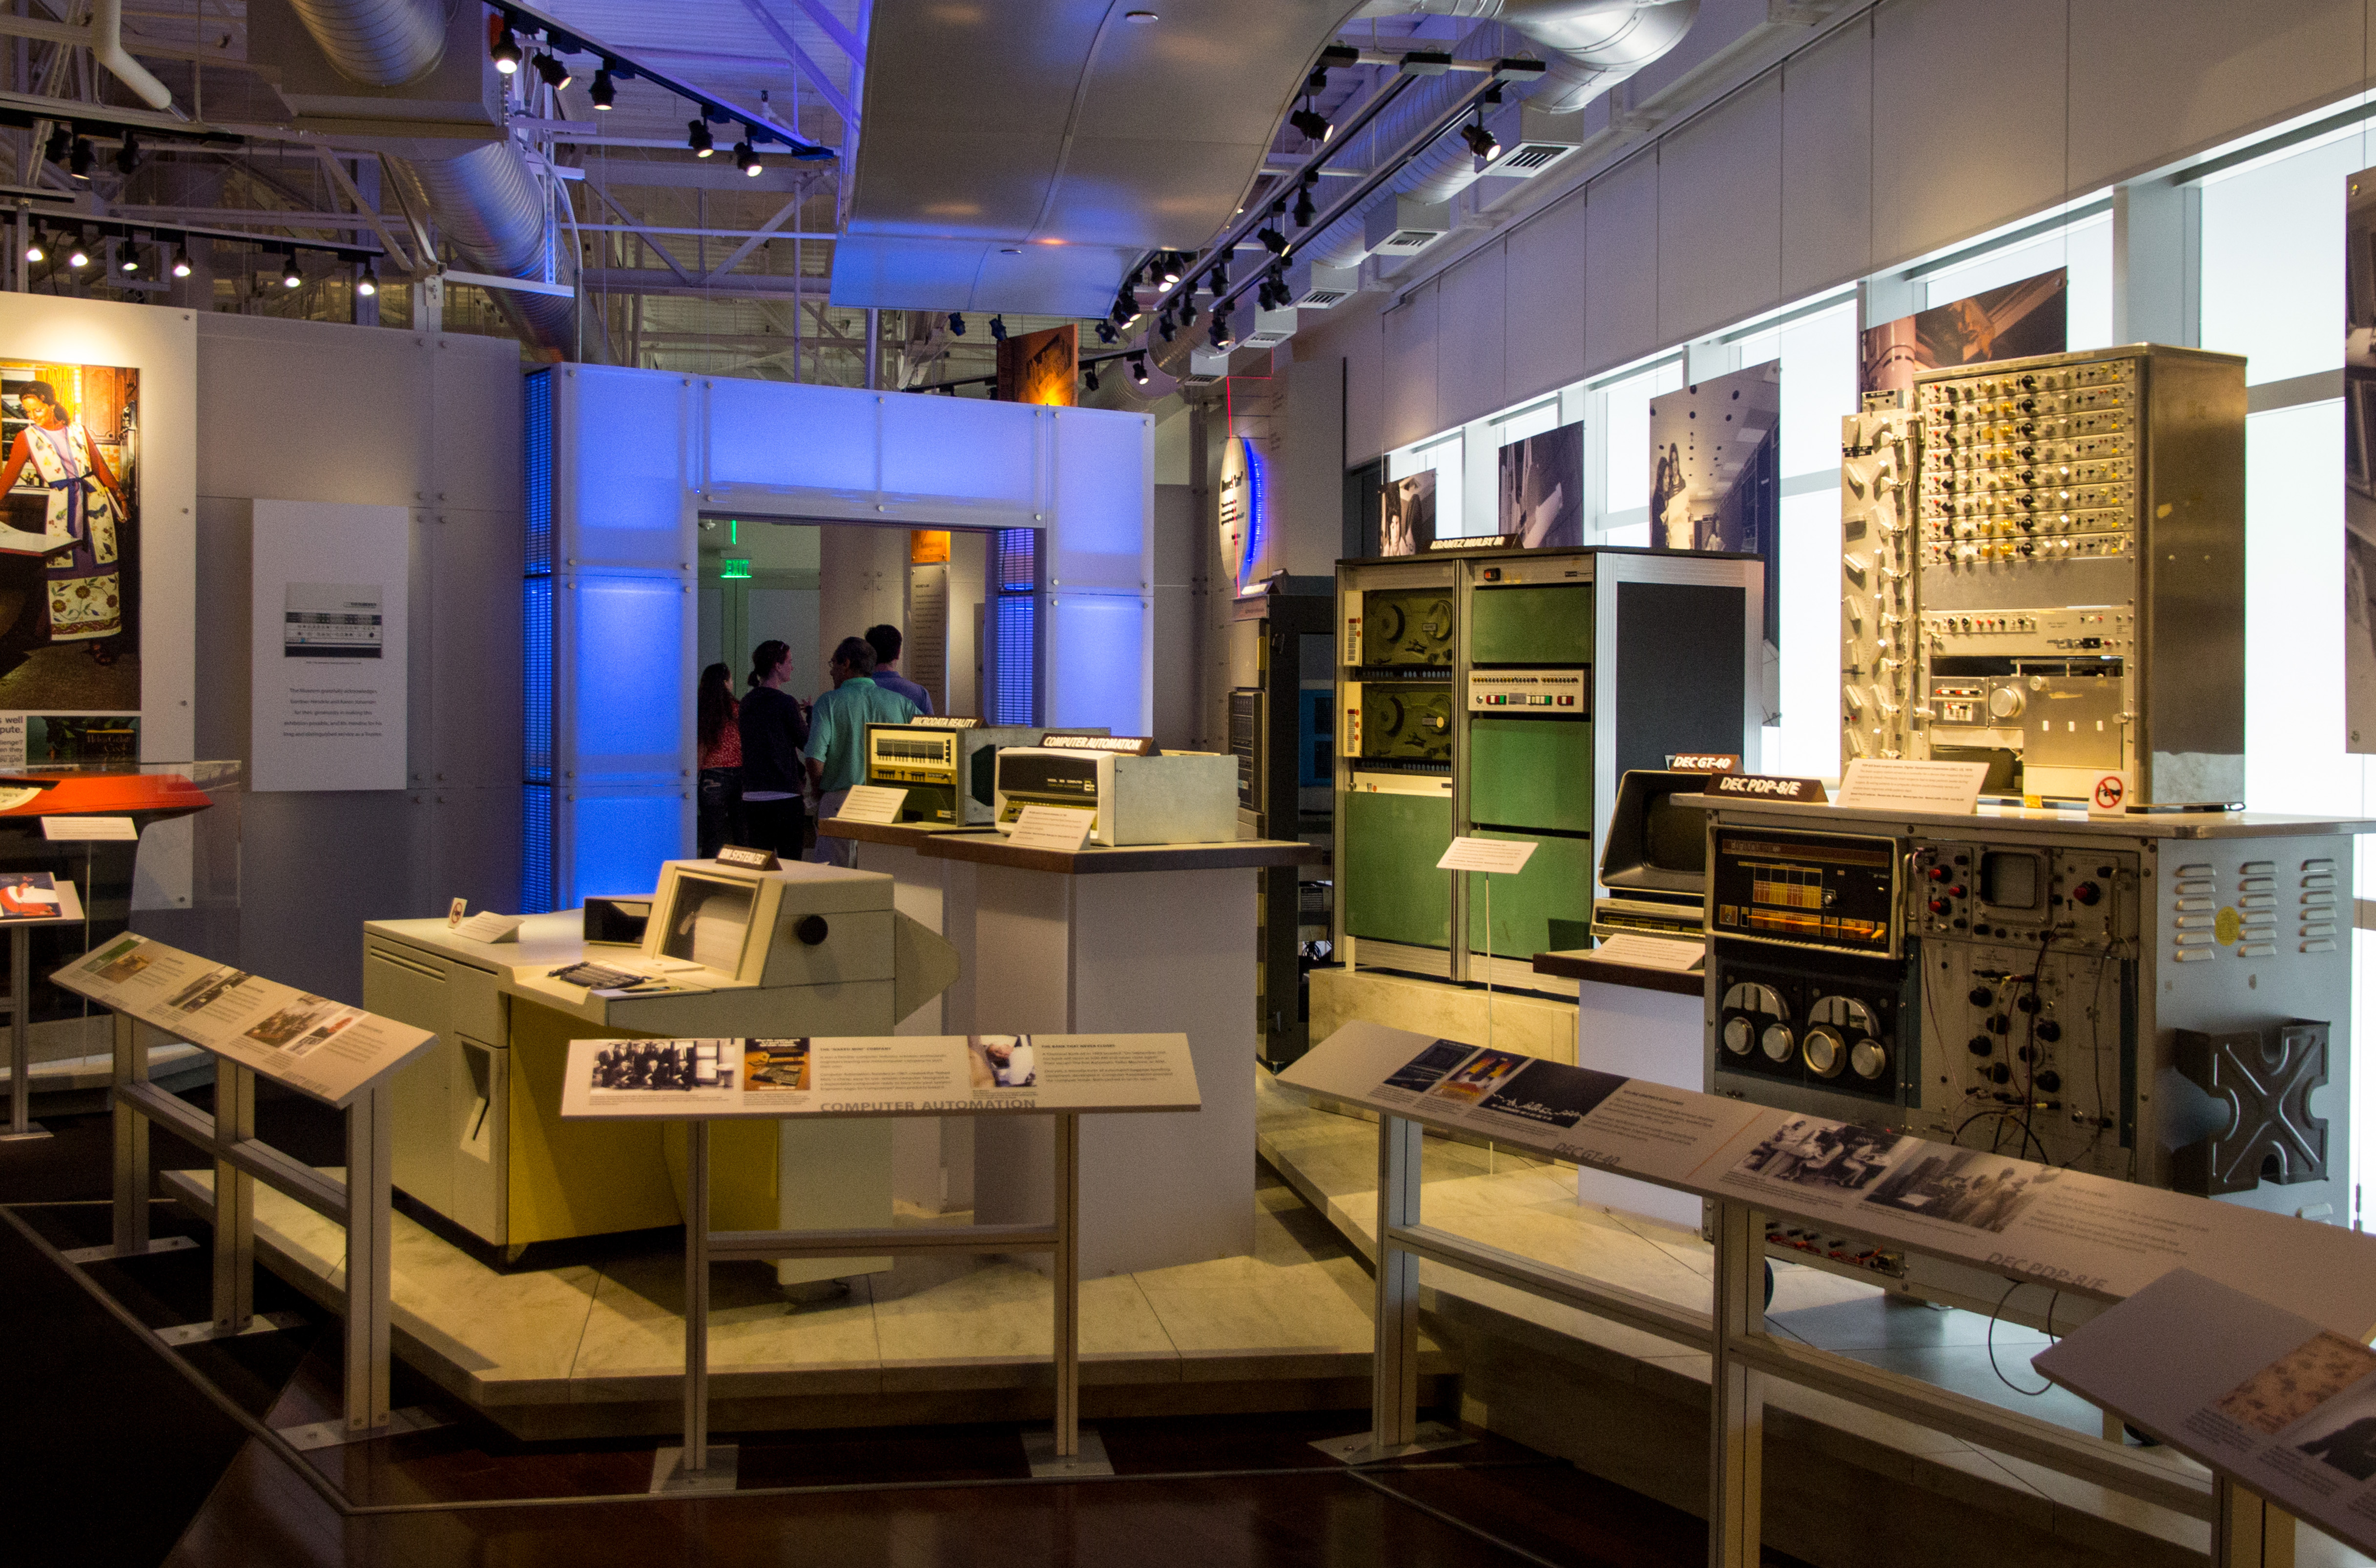 08f5a7d5367 File:Computer History Museum, Mountain View, California-3.jpg ...